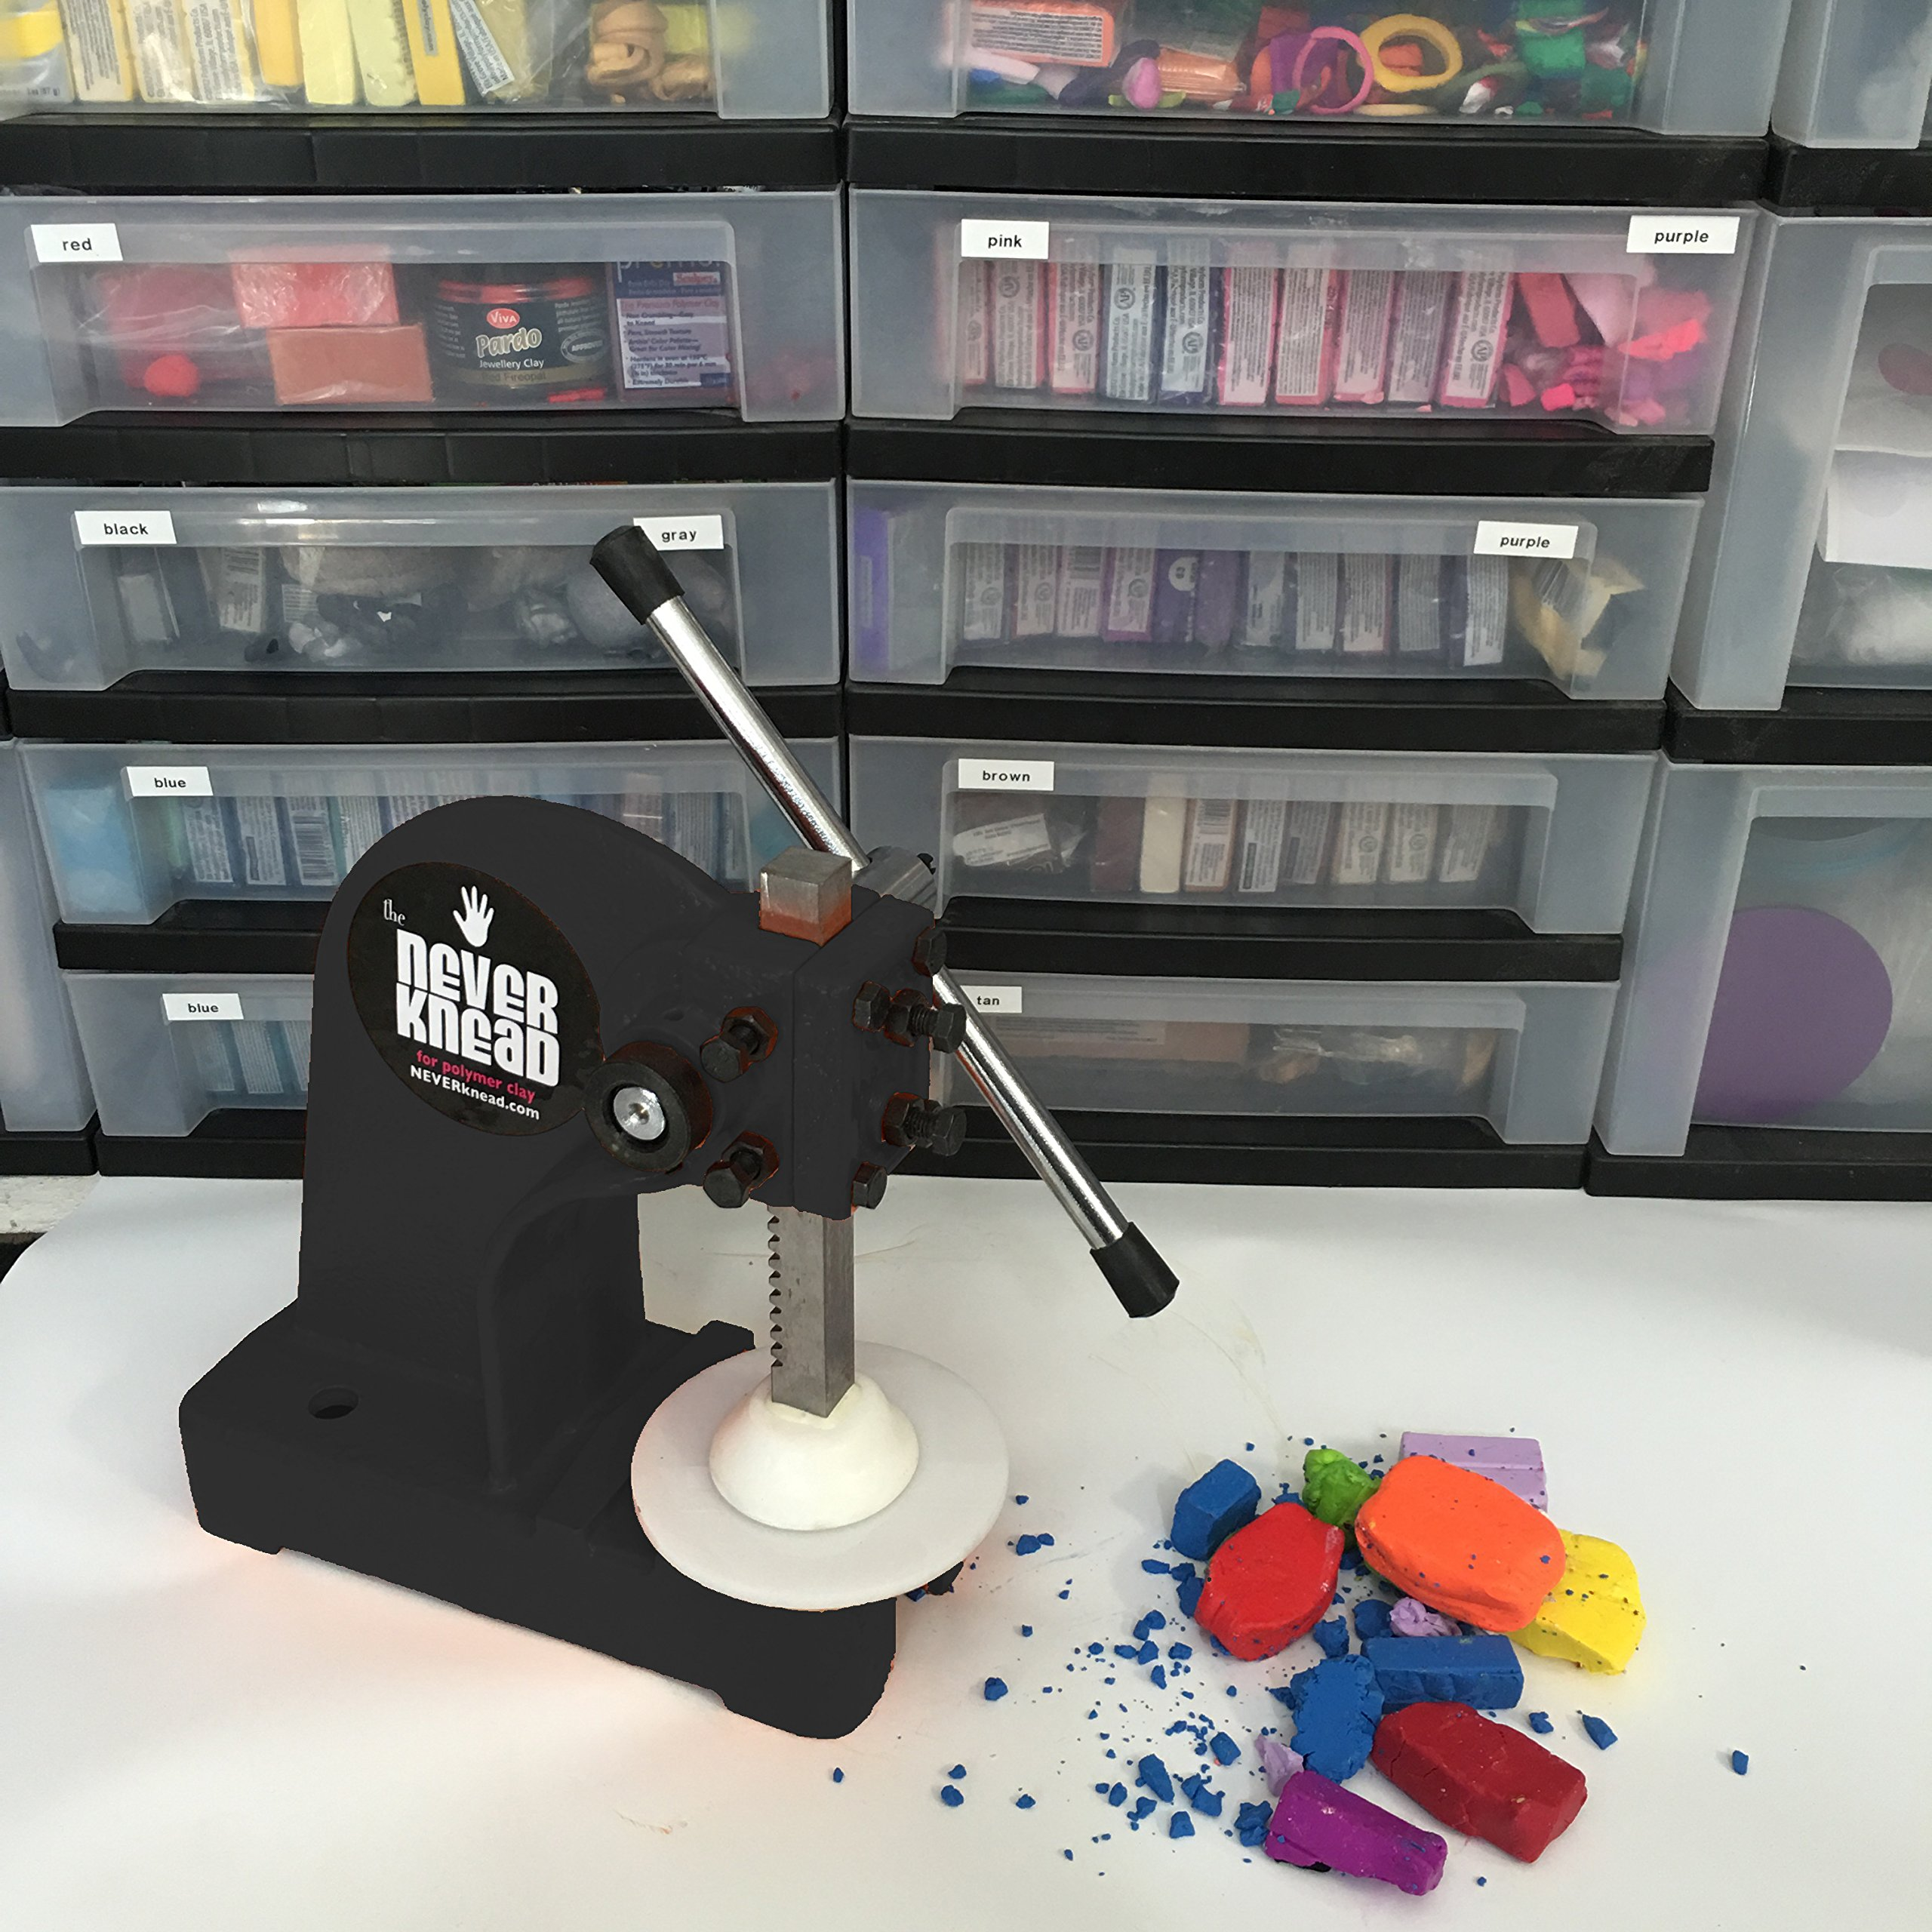 EASY Kneading of Polymer Clay - NEVERknead Tool is the Machine for ALL Polymer Clay Including Sculpey Fimo Cernit Pardo Art Clay & More by NEVERknead (Image #2)